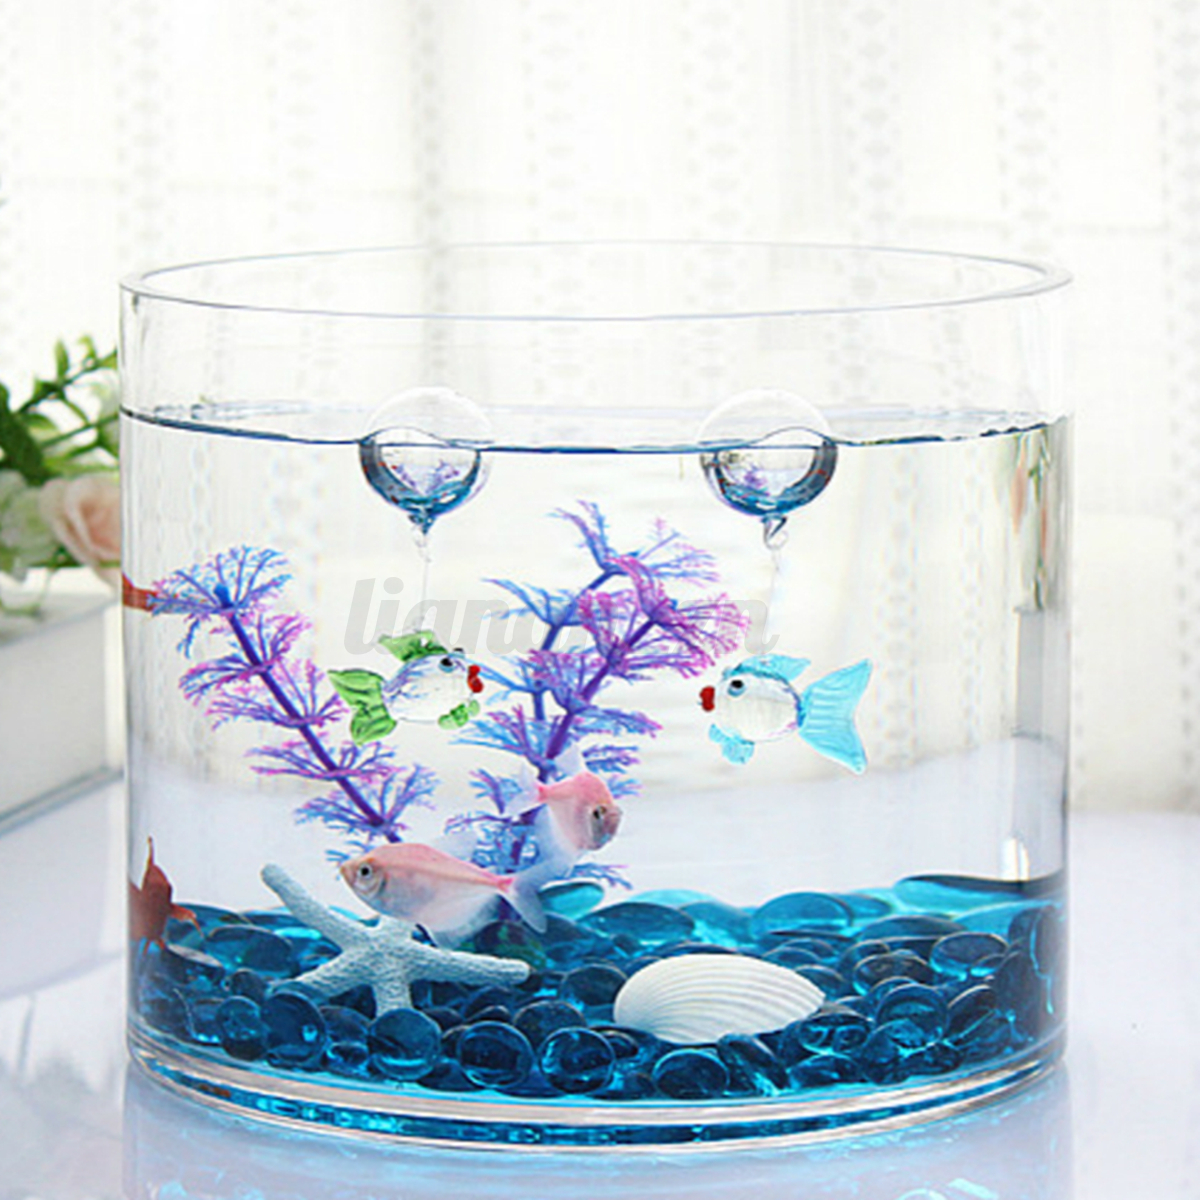 Petit poisson bulle d 39 air flottant verre aquarium ornement for Deco aquarium poisson